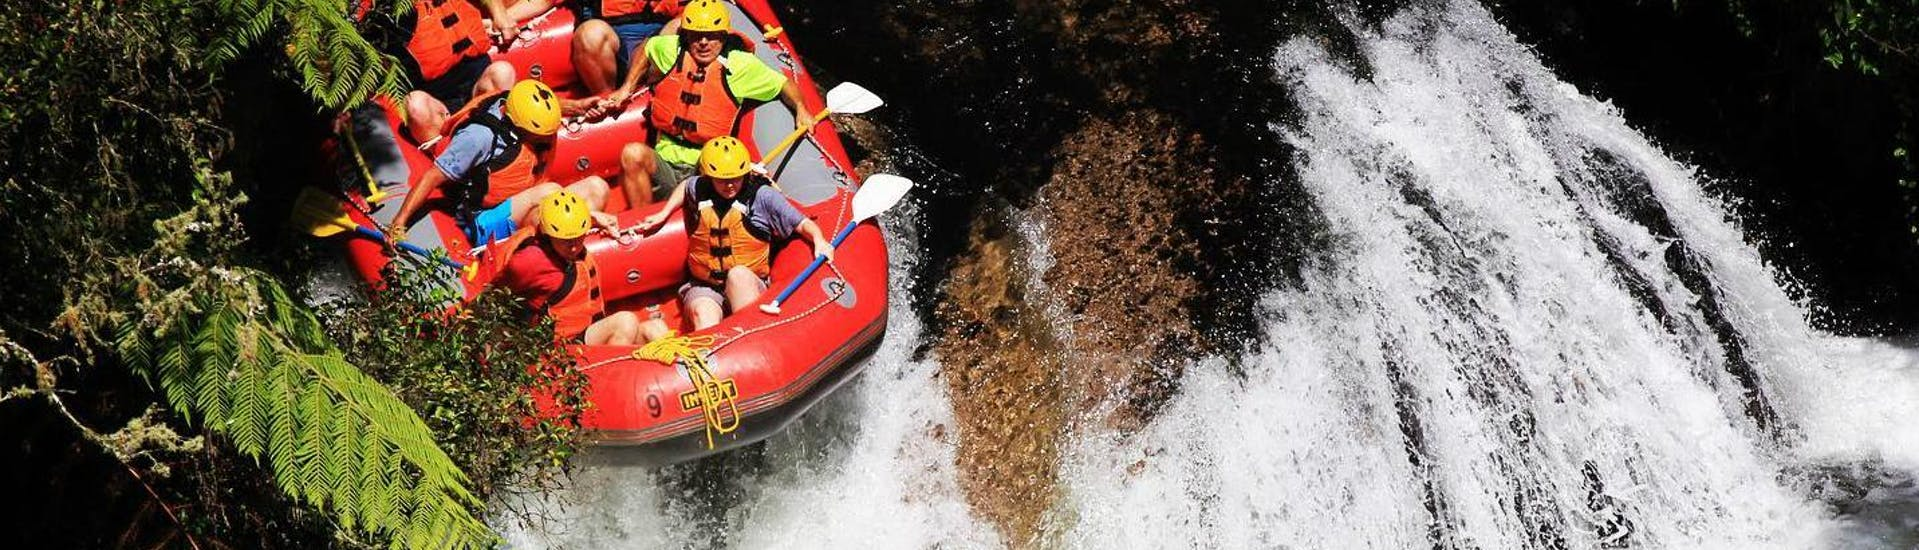 A group of rafters is taking the plunge at the famous Tutea Falls, worlds highest commercially rafted waterfall, during a tour with Rafting Adventure Rotorua.